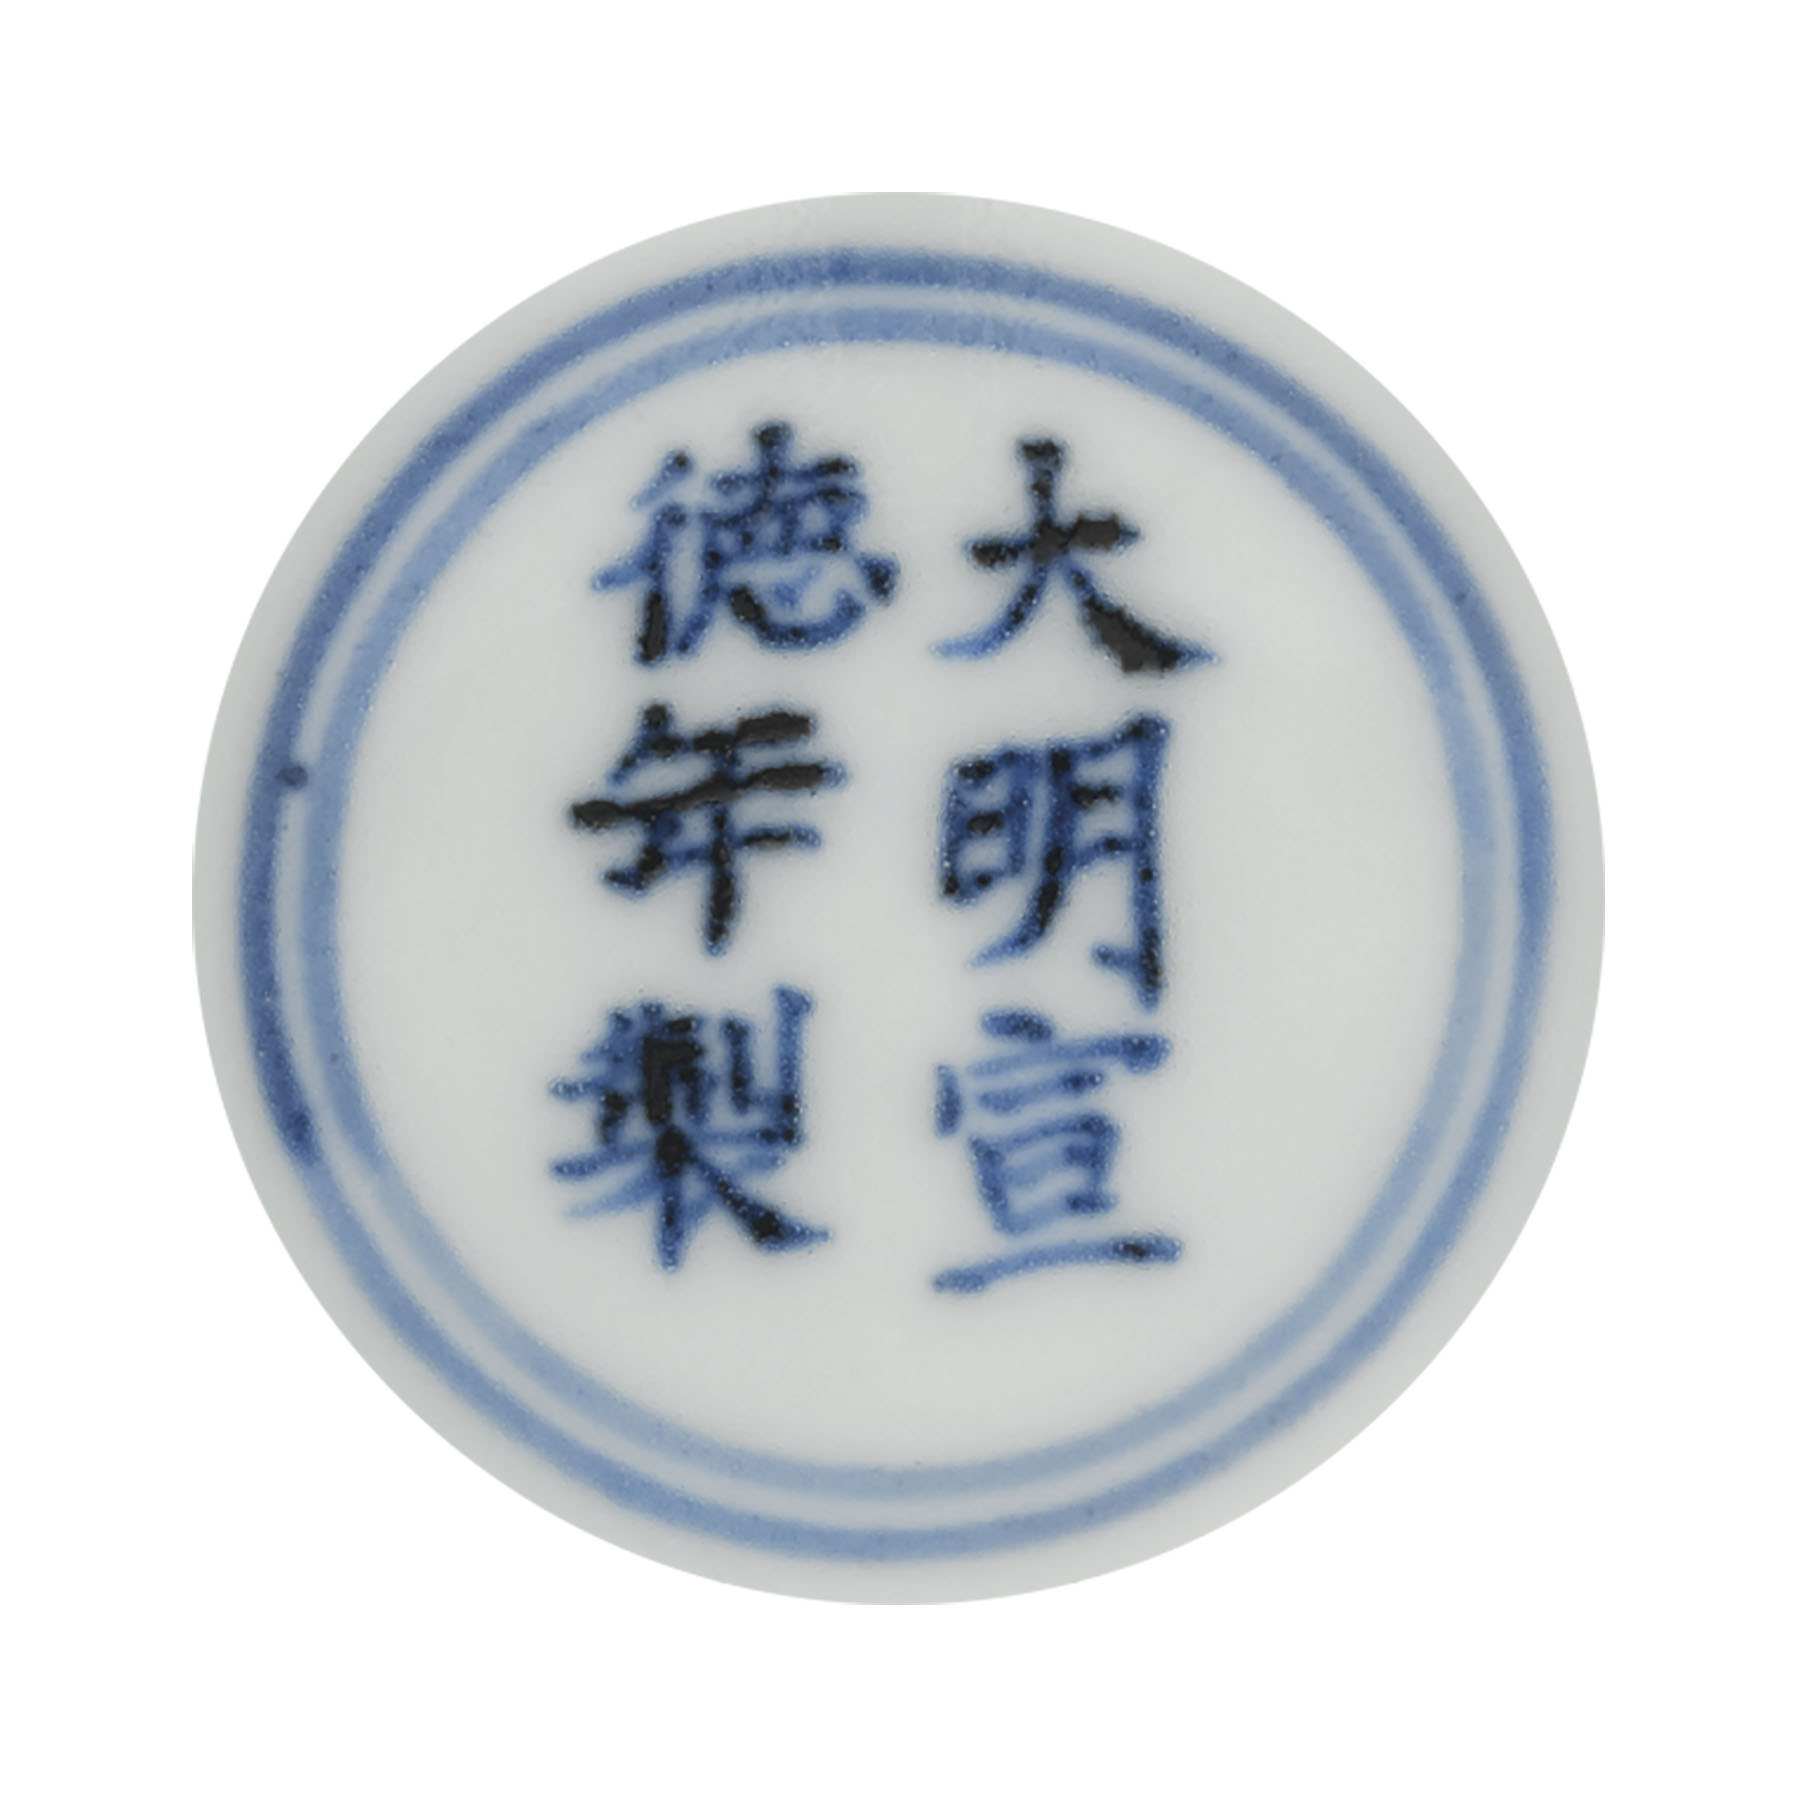 A VERY RARE EARLY-MING BLUE AND WHITE LOBED BOWL